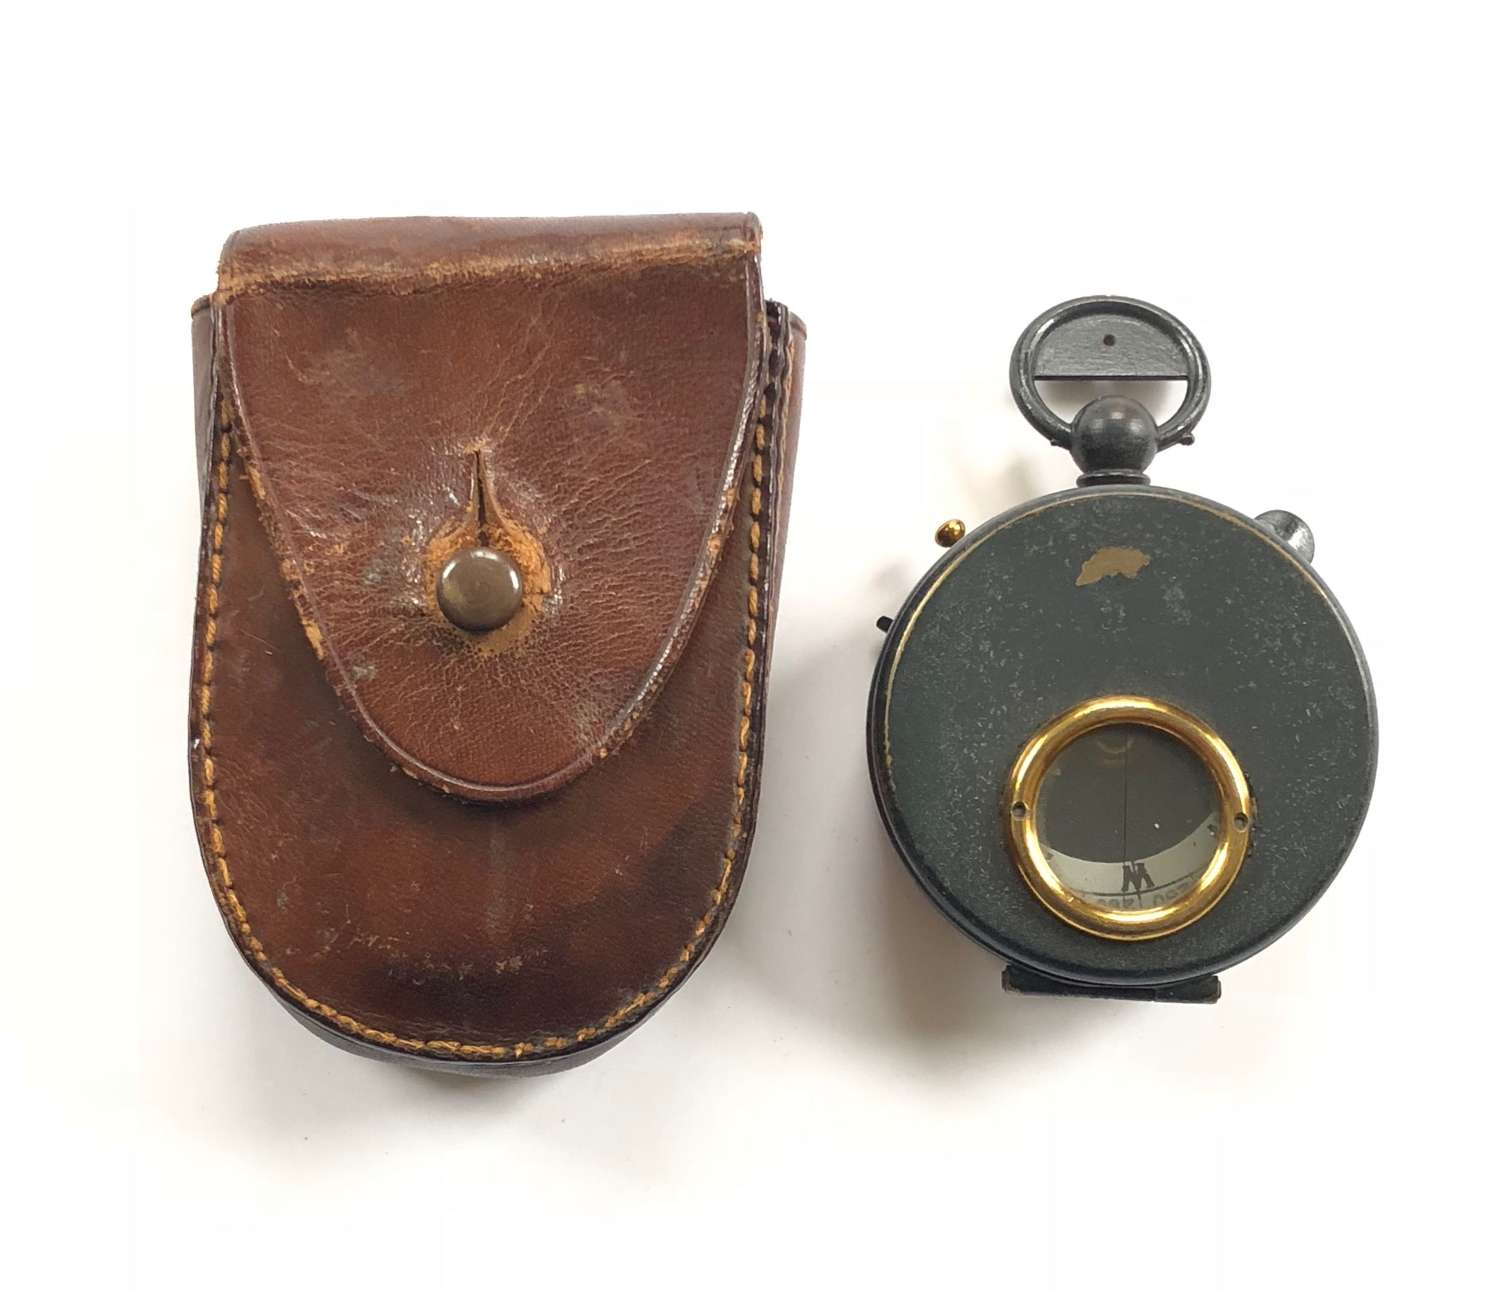 WW1 Period British Army Officer's Marching Compass